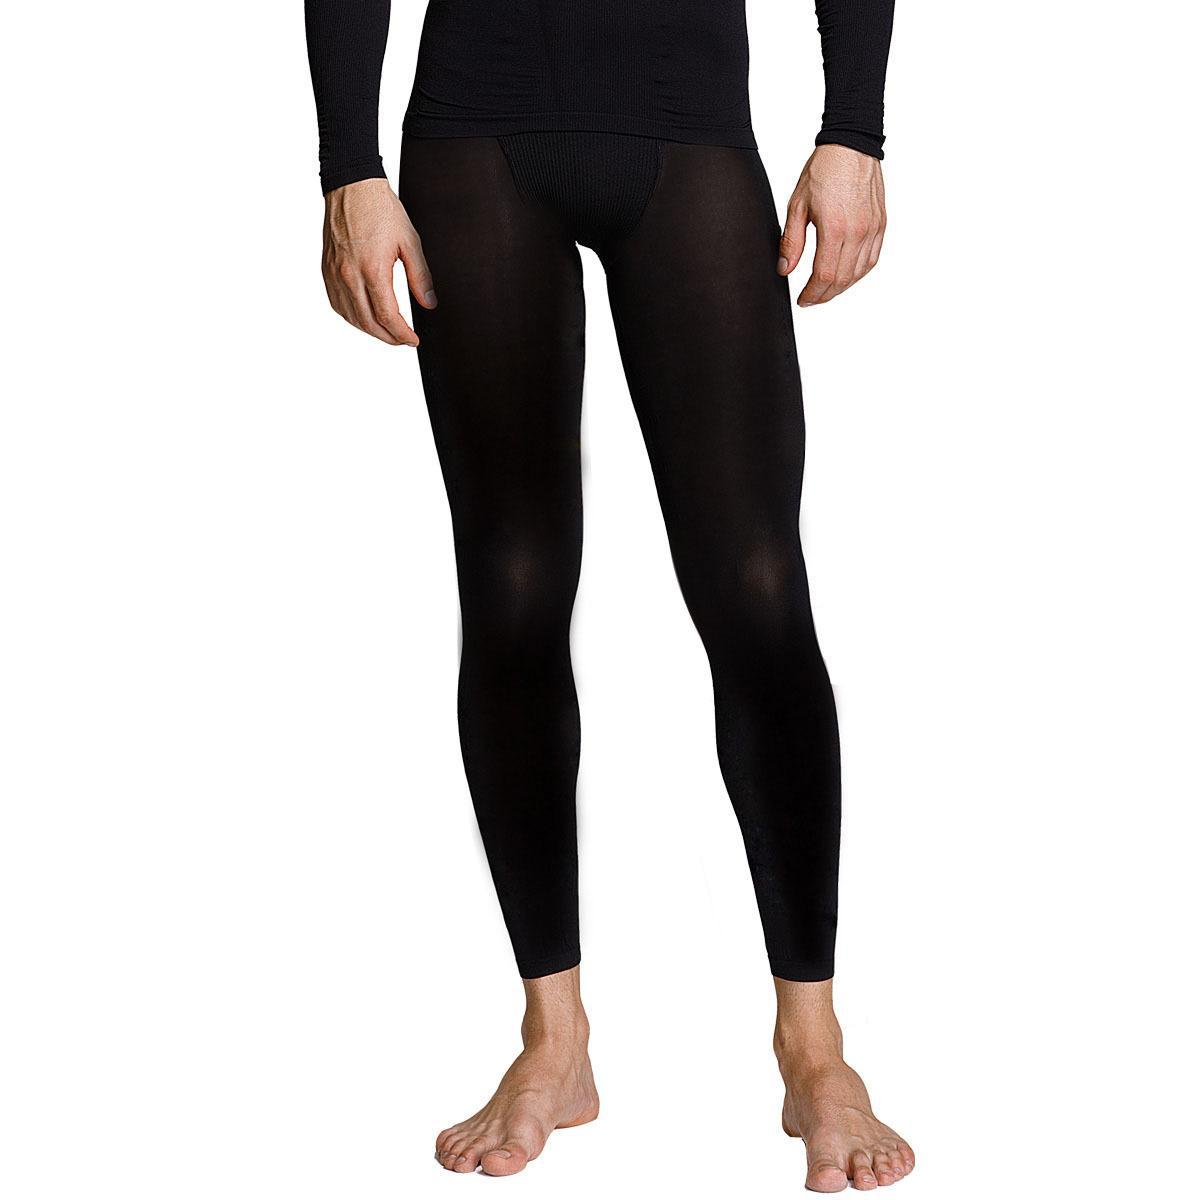 Male legging tight beauty care recoil butt-lifting stovepipe pants slimming fat burning long johns male body shaping pants